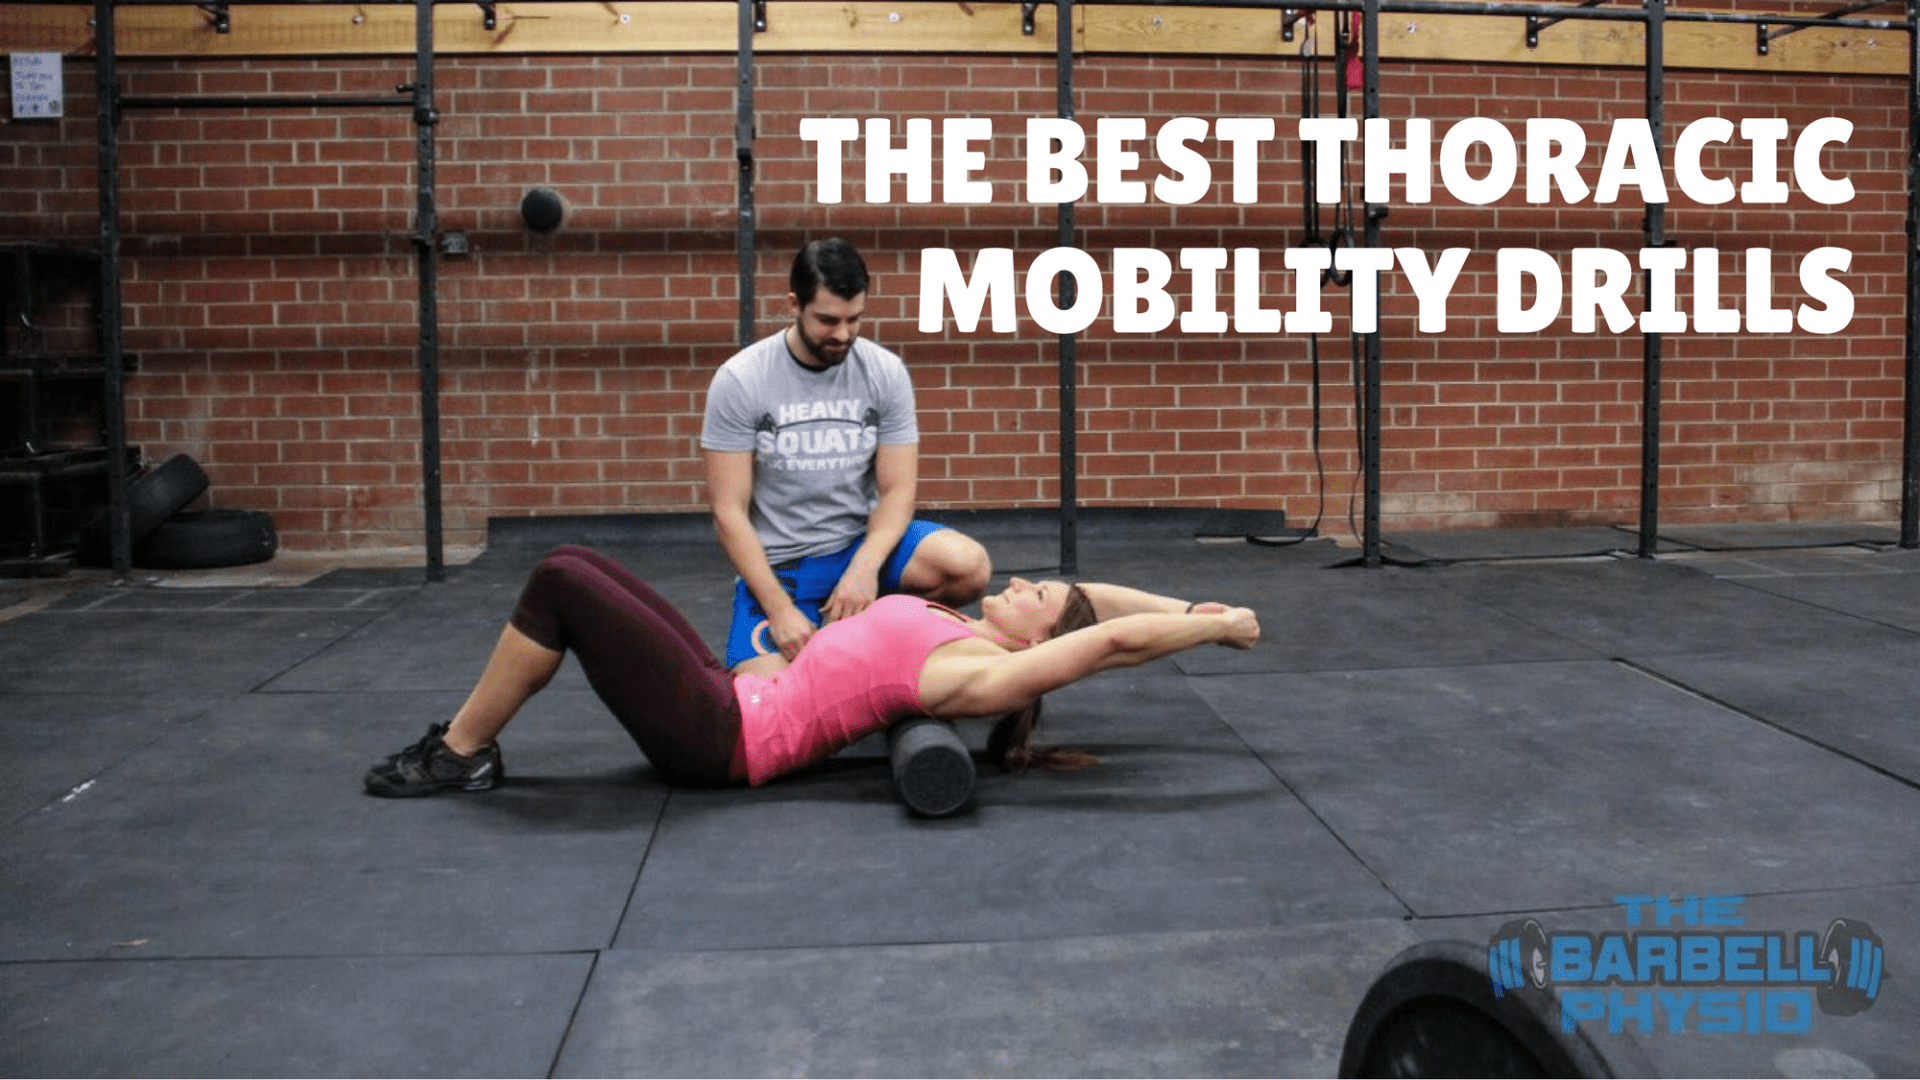 Thoracic spine mobility